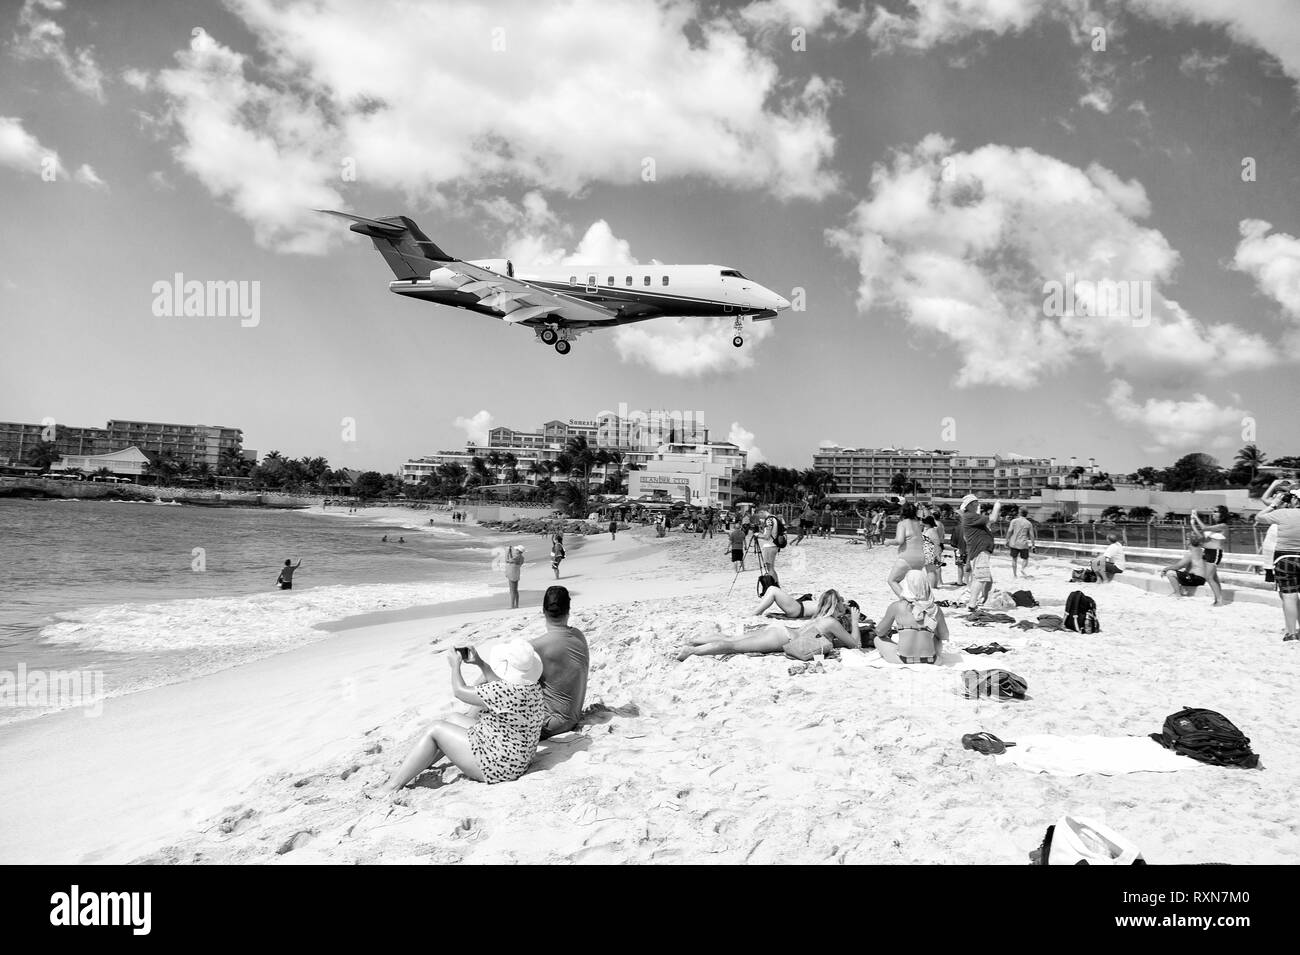 St Maarten, Kingdom of Netherlands - February 13, 2016: beach crowds observe low flying airplanes landing near Maho Beach on island of St Maarten in the Caribbean - Stock Image